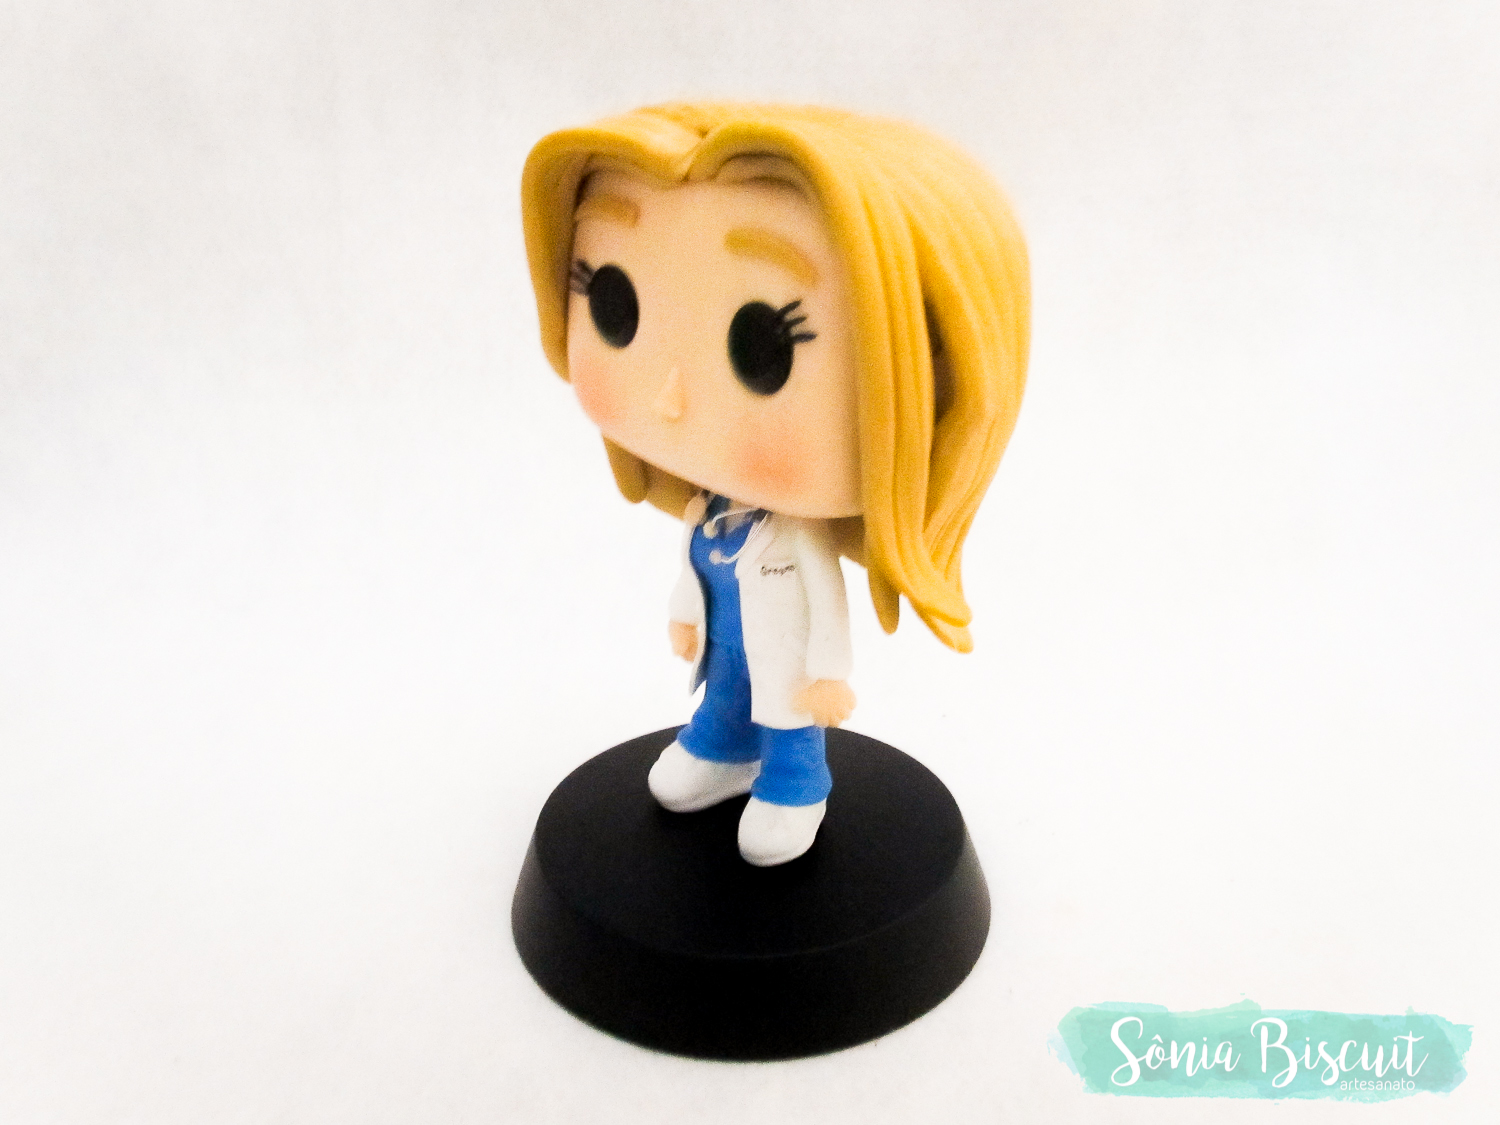 Sonia Biscuit, Biscuit, Funko, Funko Pop, Greys Anatomy, Meredith Grey